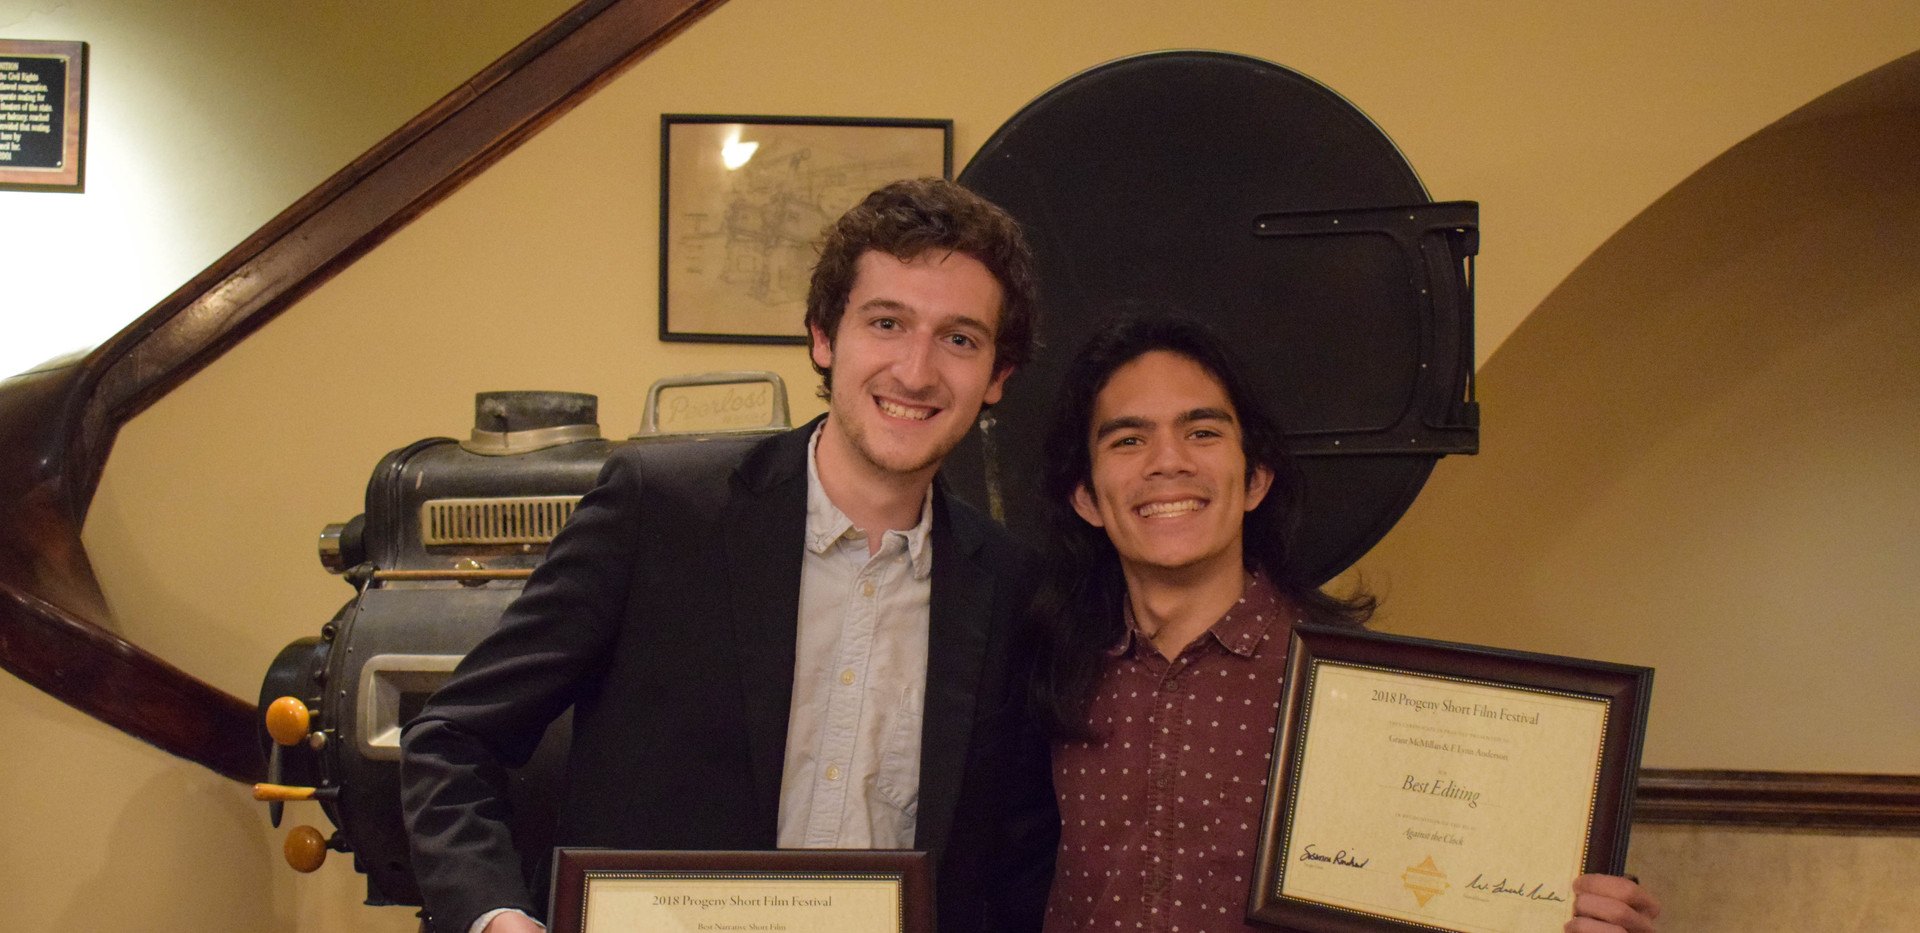 Matt Iglesias (left) and Grant McMillan (right) hold their respective Best Narrative Short Film and Best Editing awards for their short film, Against the Clock.